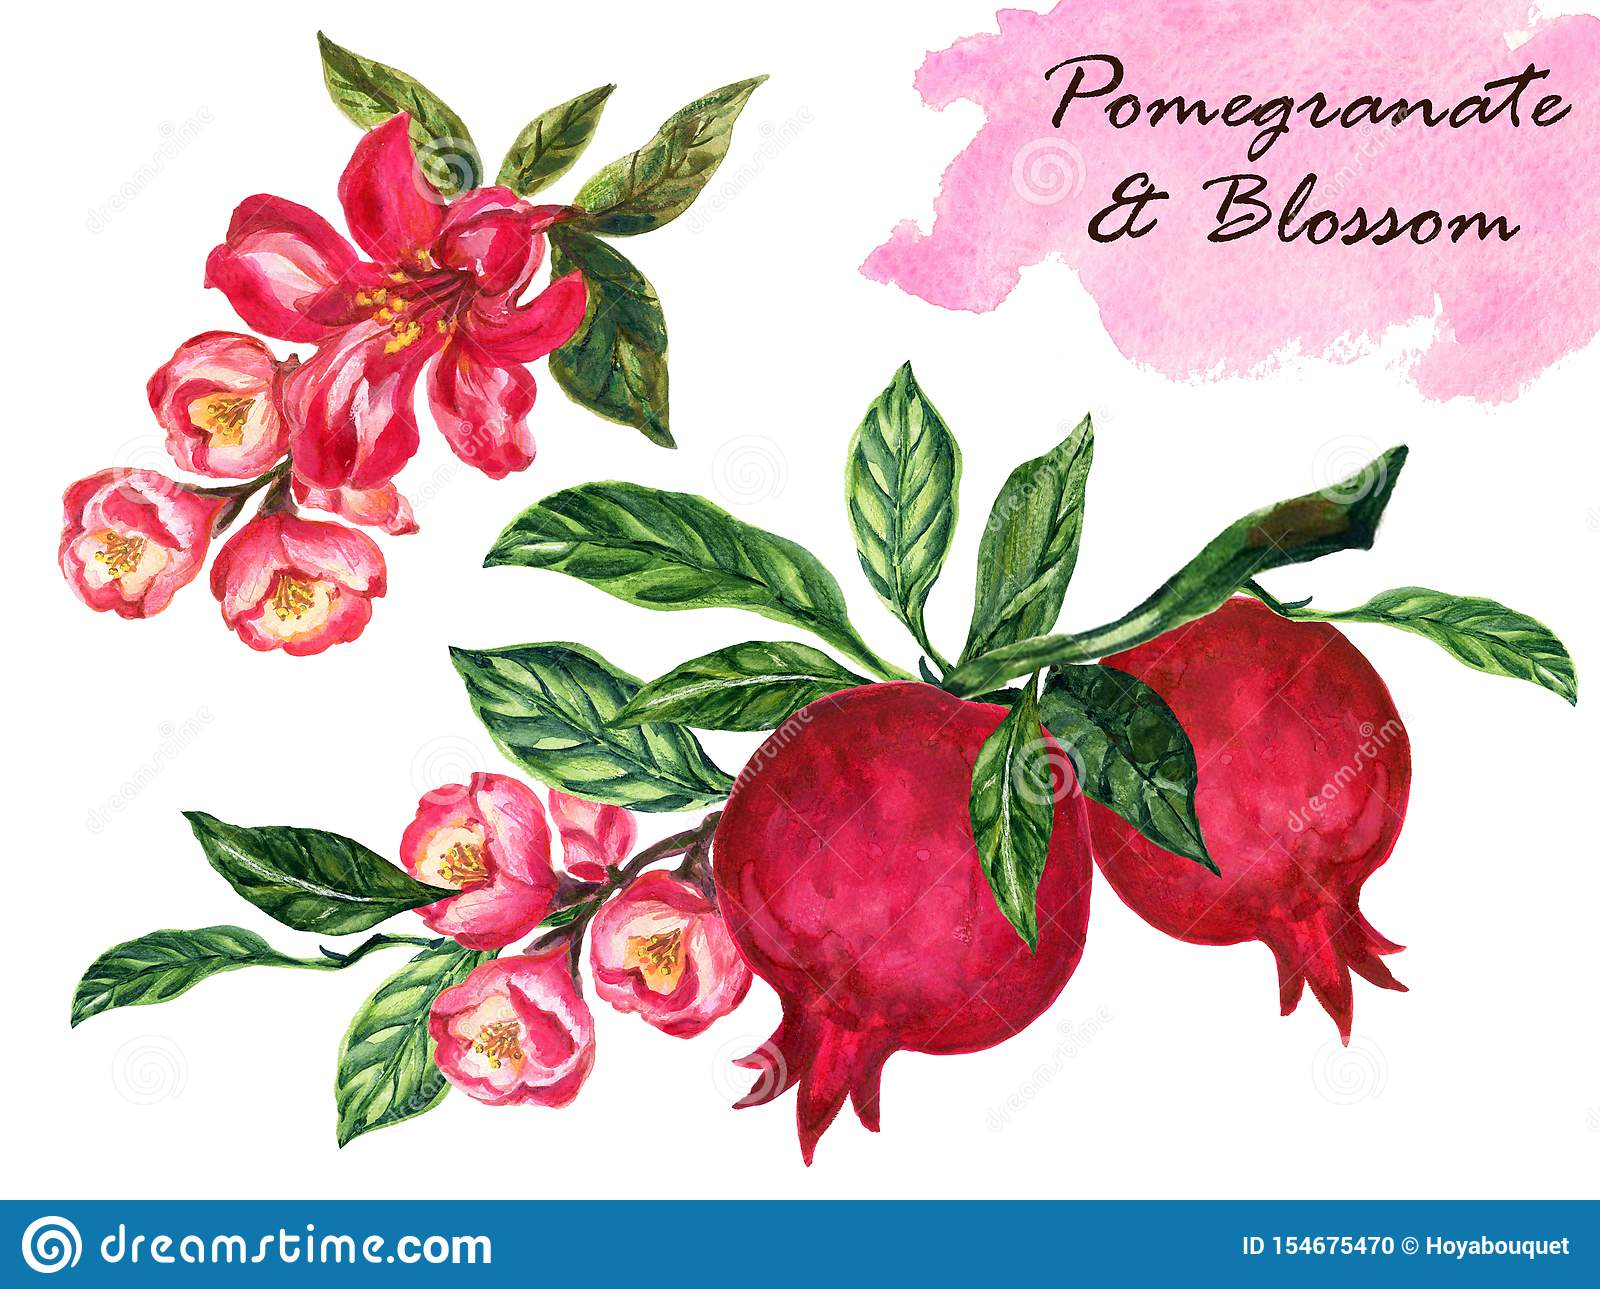 Watercolor Vintage Pomegranate With Branch Foliage Composition Pomegranate Tree Isolated On White Background Botanical Stock Illustration Illustration Of Bloom Fruit 154675470